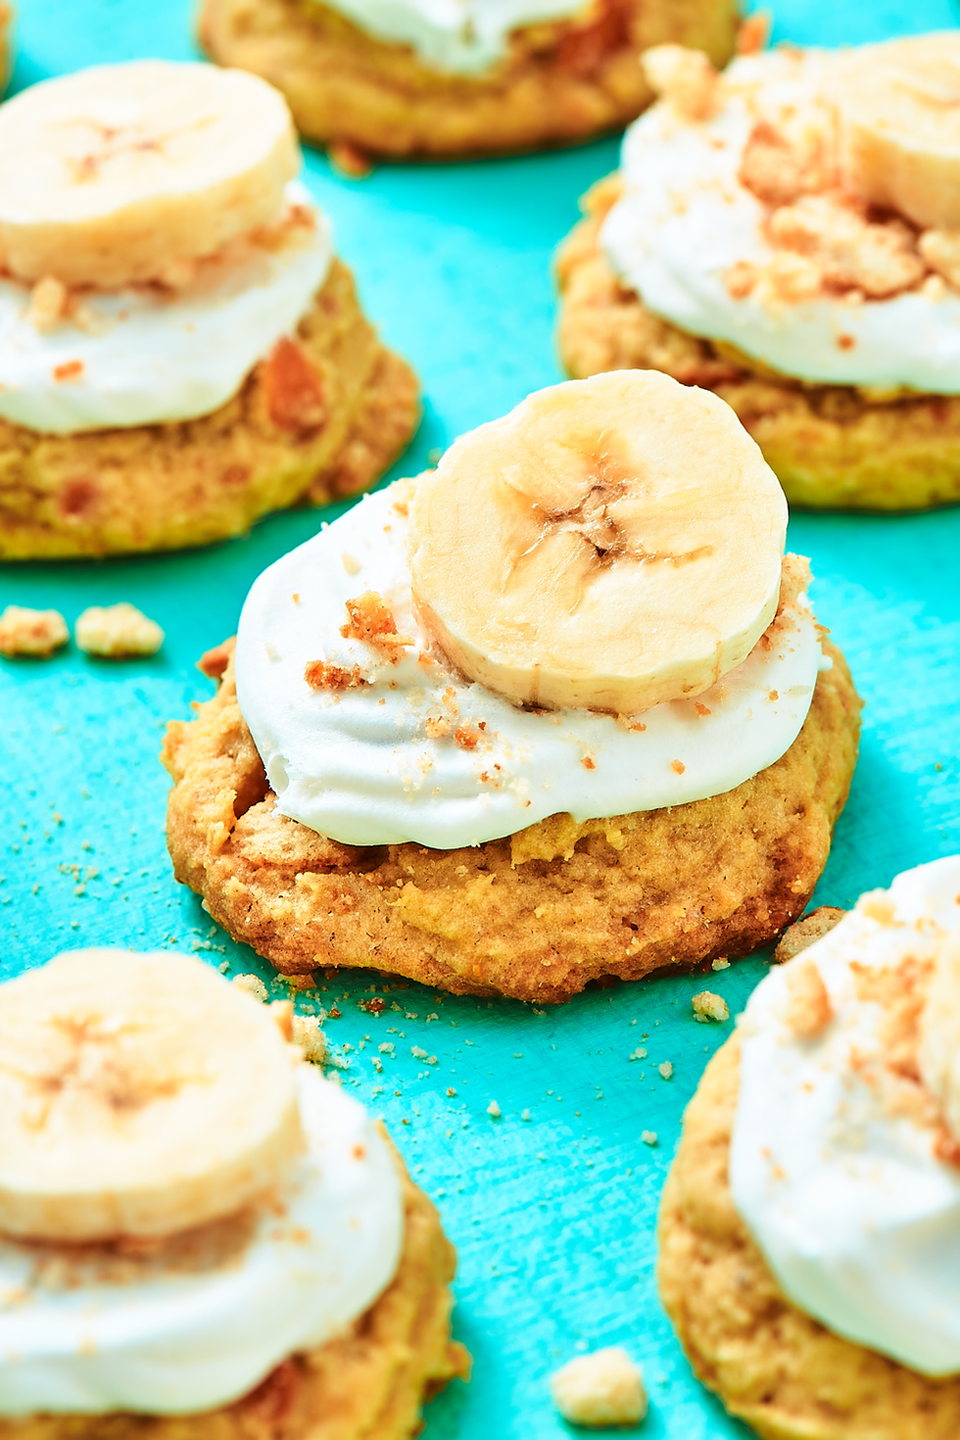 "<p>Banana pudding is a crowd favorite, but have you ever tried the delicious dessert in cookie form? If not, you're going to want to add these to your list. </p><p><strong><em>Get the recipe at <a href=""https://www.delish.com/cooking/recipe-ideas/recipes/a57100/banana-pudding-cookies-recipe/"" rel=""nofollow noopener"" target=""_blank"" data-ylk=""slk:Delish"" class=""link rapid-noclick-resp"">Delish</a>.</em></strong></p>"